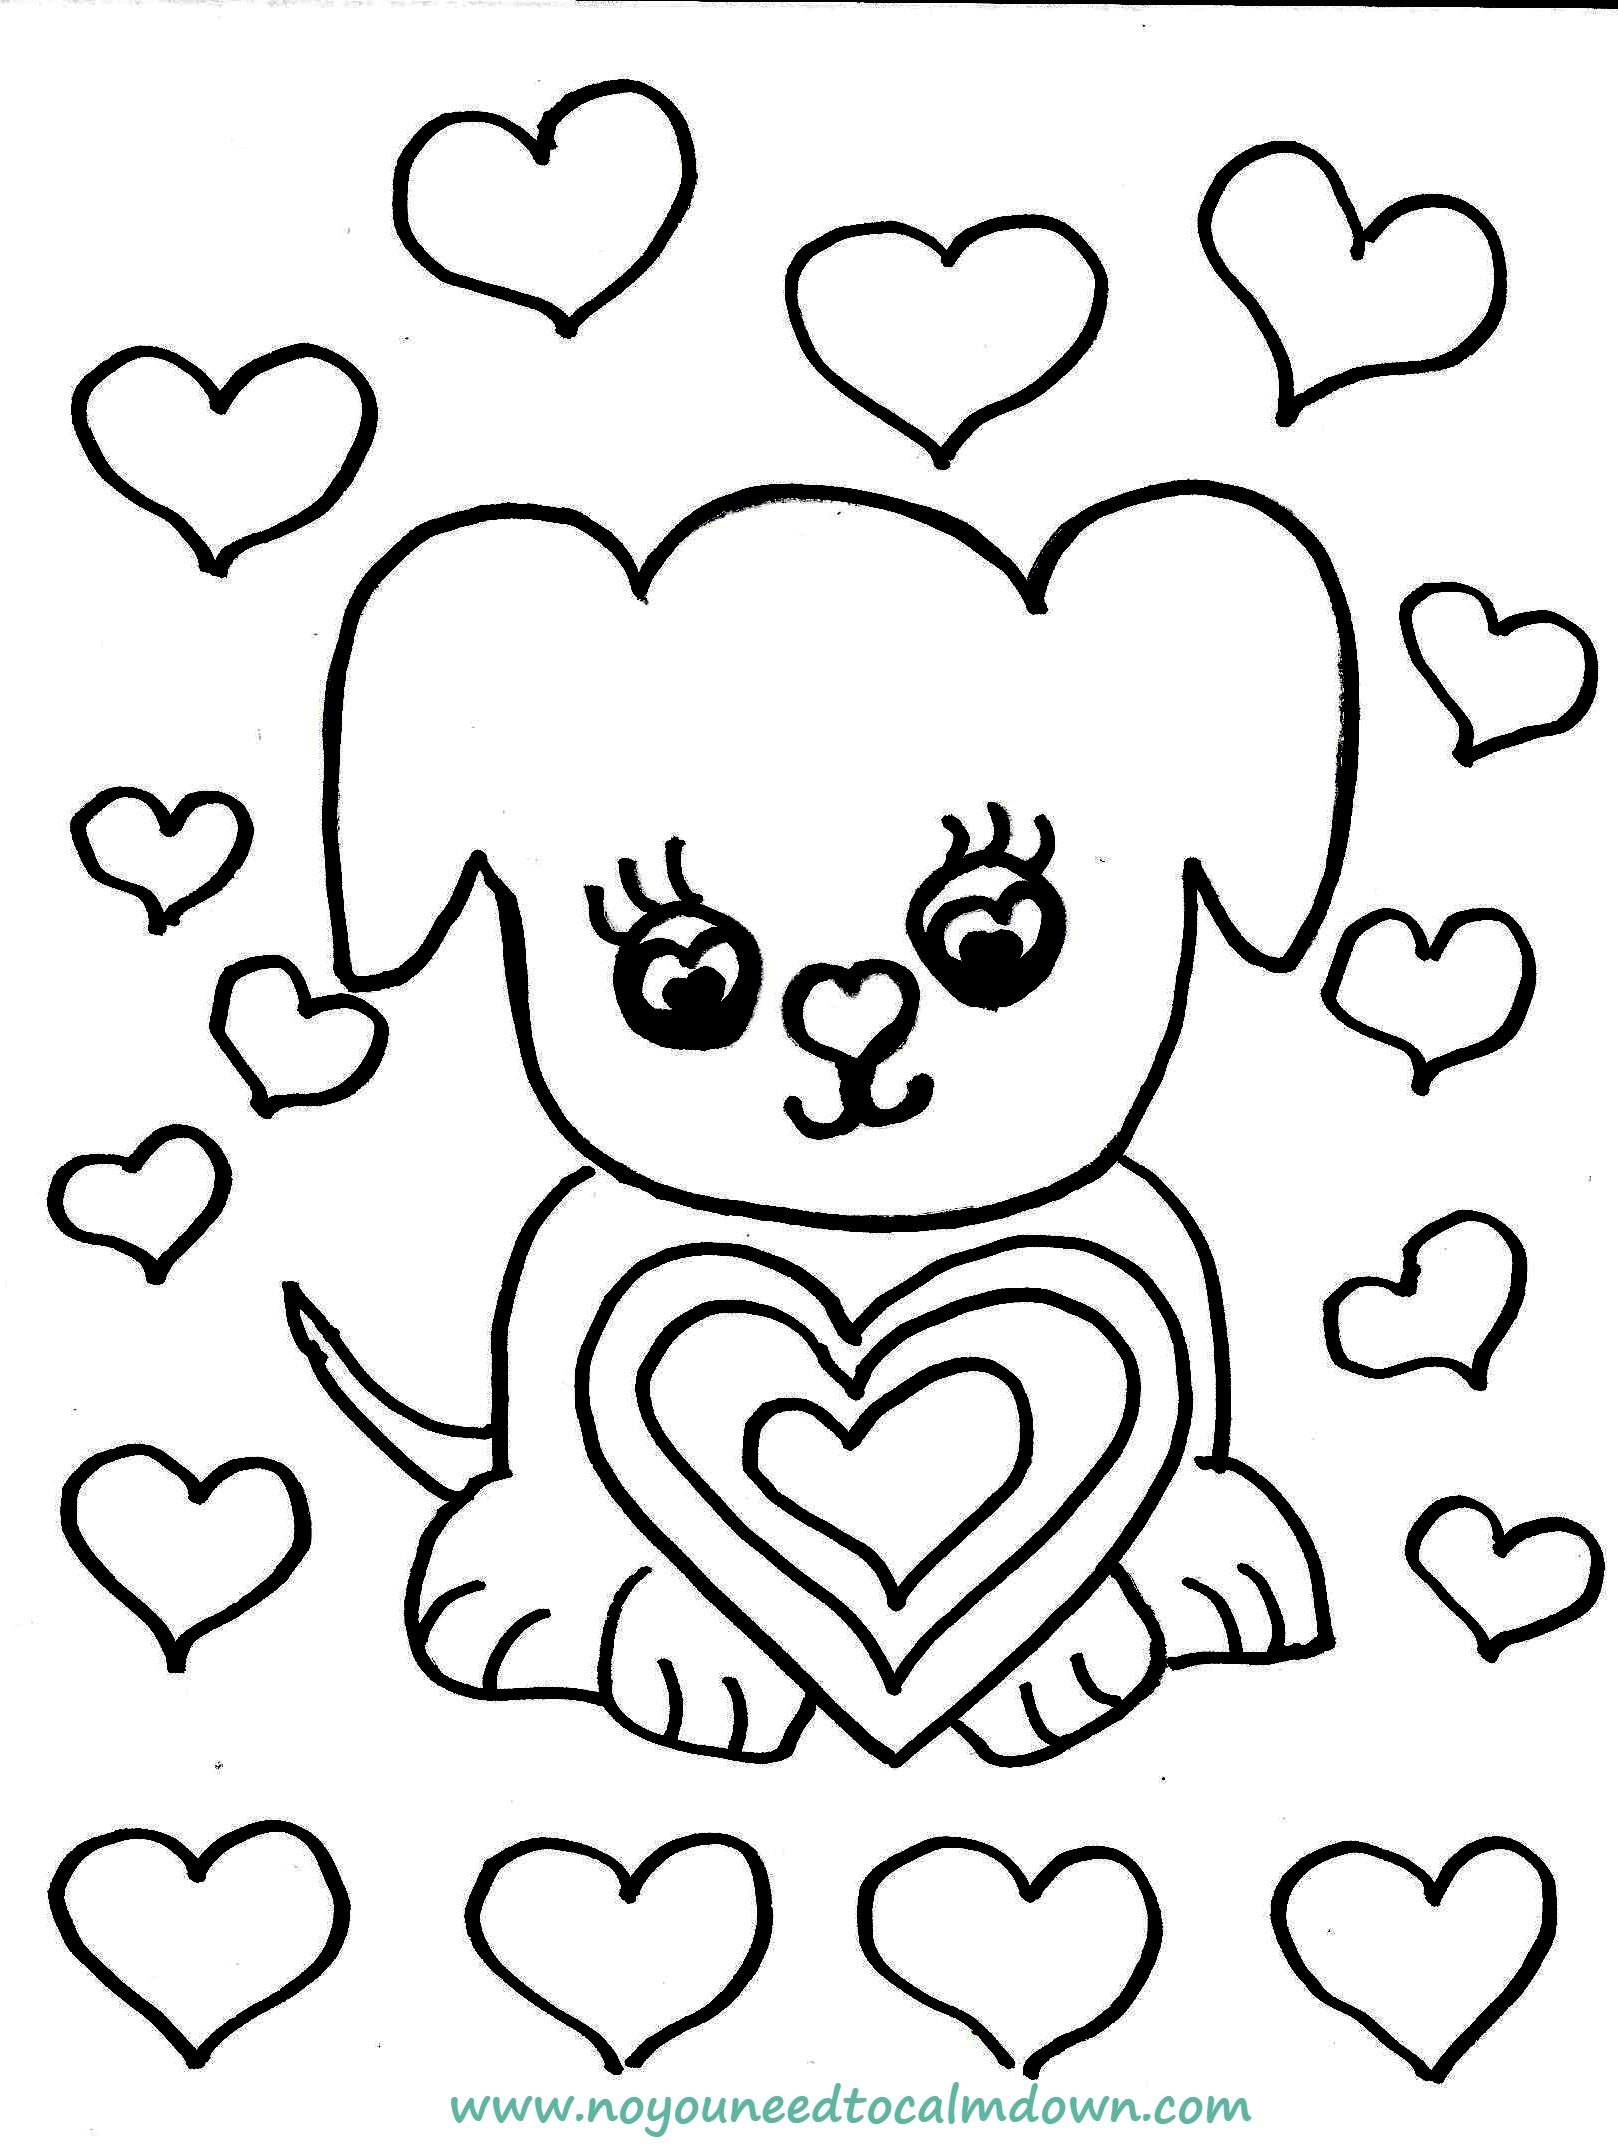 4 free Valentine's Day coloring pages for kids | 2152x1618